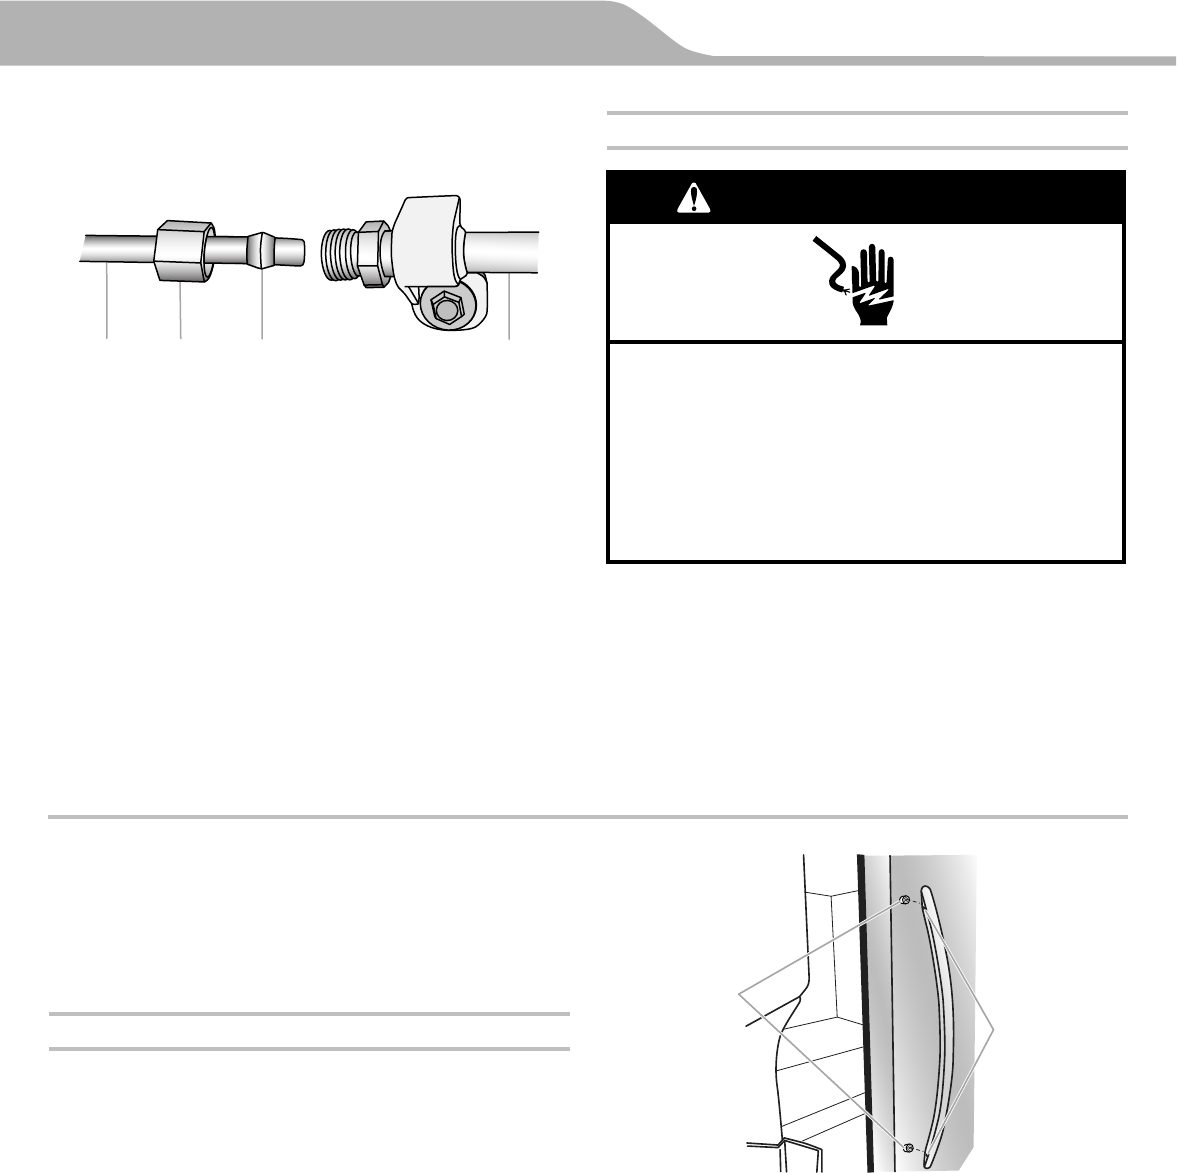 page 100 of kitchenaid refrigerator kfis29bbms user guide